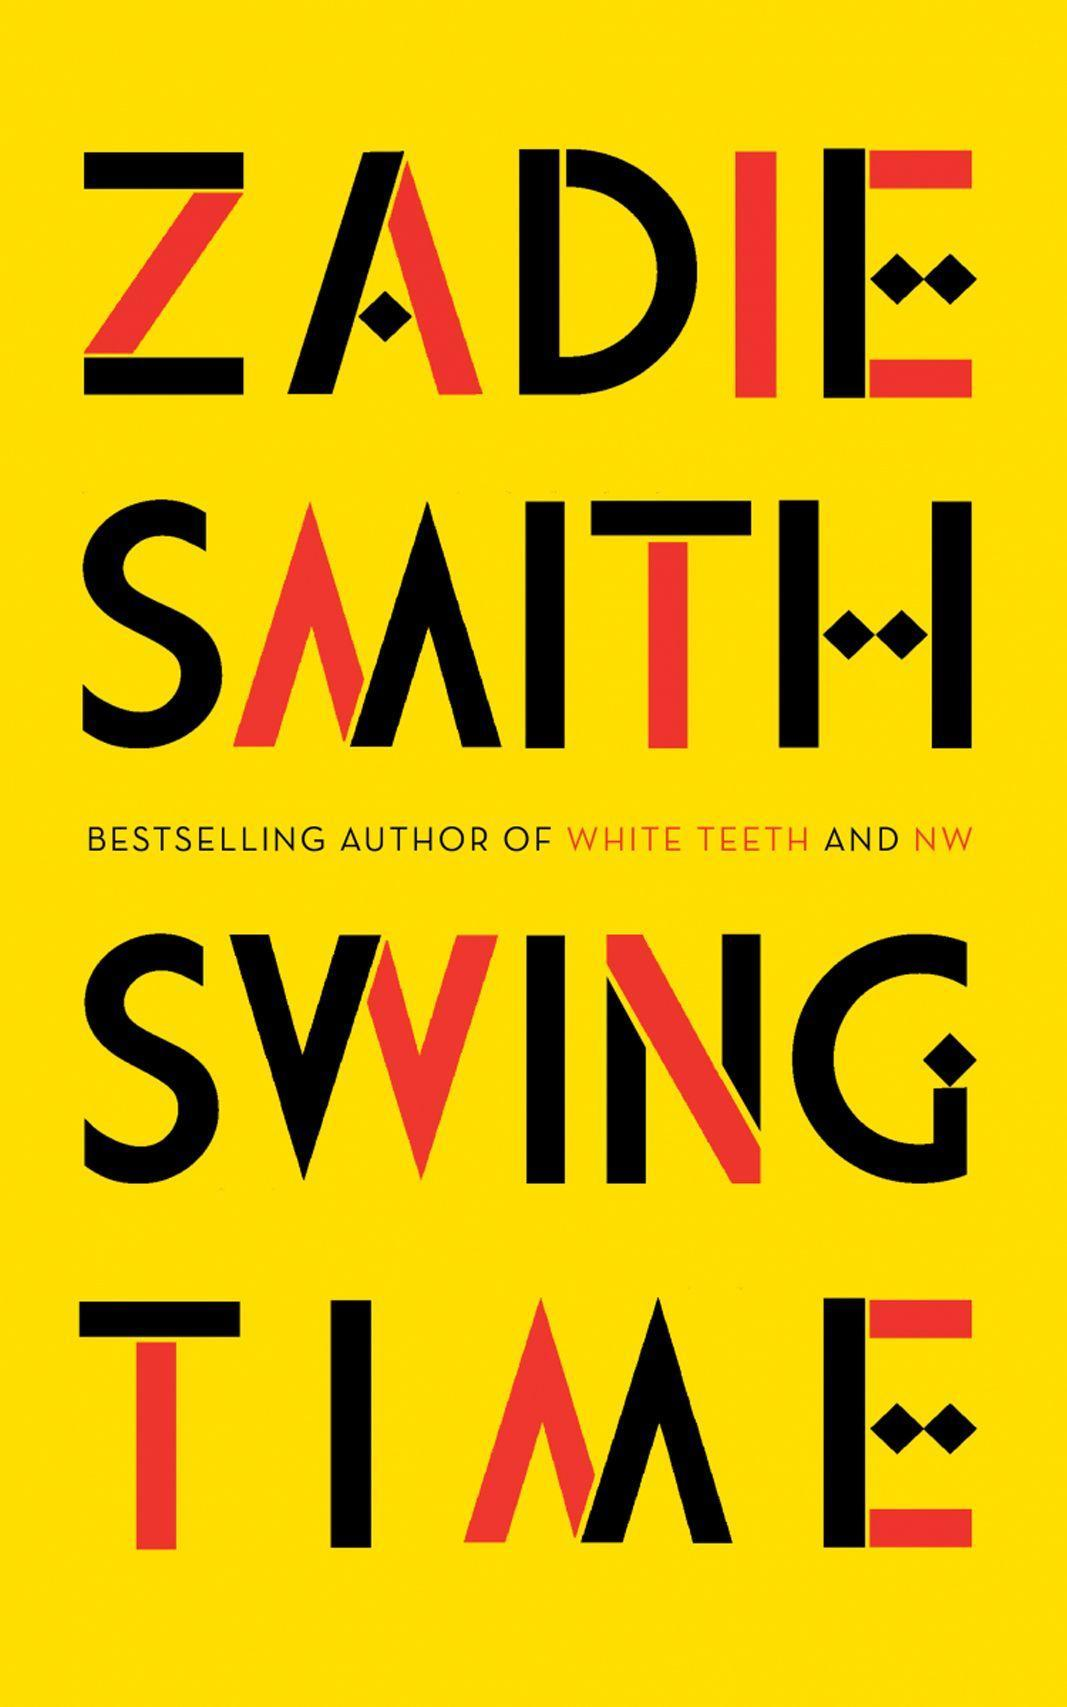 <p><strong><em>Swing Time</em></strong></p> <p>By Zadie Smith</p> <p>Two Black girls want to be dancers when they grow up – but only one of them has the talent to push that dream forward. Though they remain inextricably bound to one another, their friendship ends abruptly in their 20s.</p> <p>Tracey manages to become a dancer, making it into the chorus line. But her life is a struggle, as well as a kind of arrested development. Her former friend goes on to become an assistant to a famous pop star, leaving her old life behind. But when a twist of fate sends them both to west Africa, the two women are thrown together once again.</p>